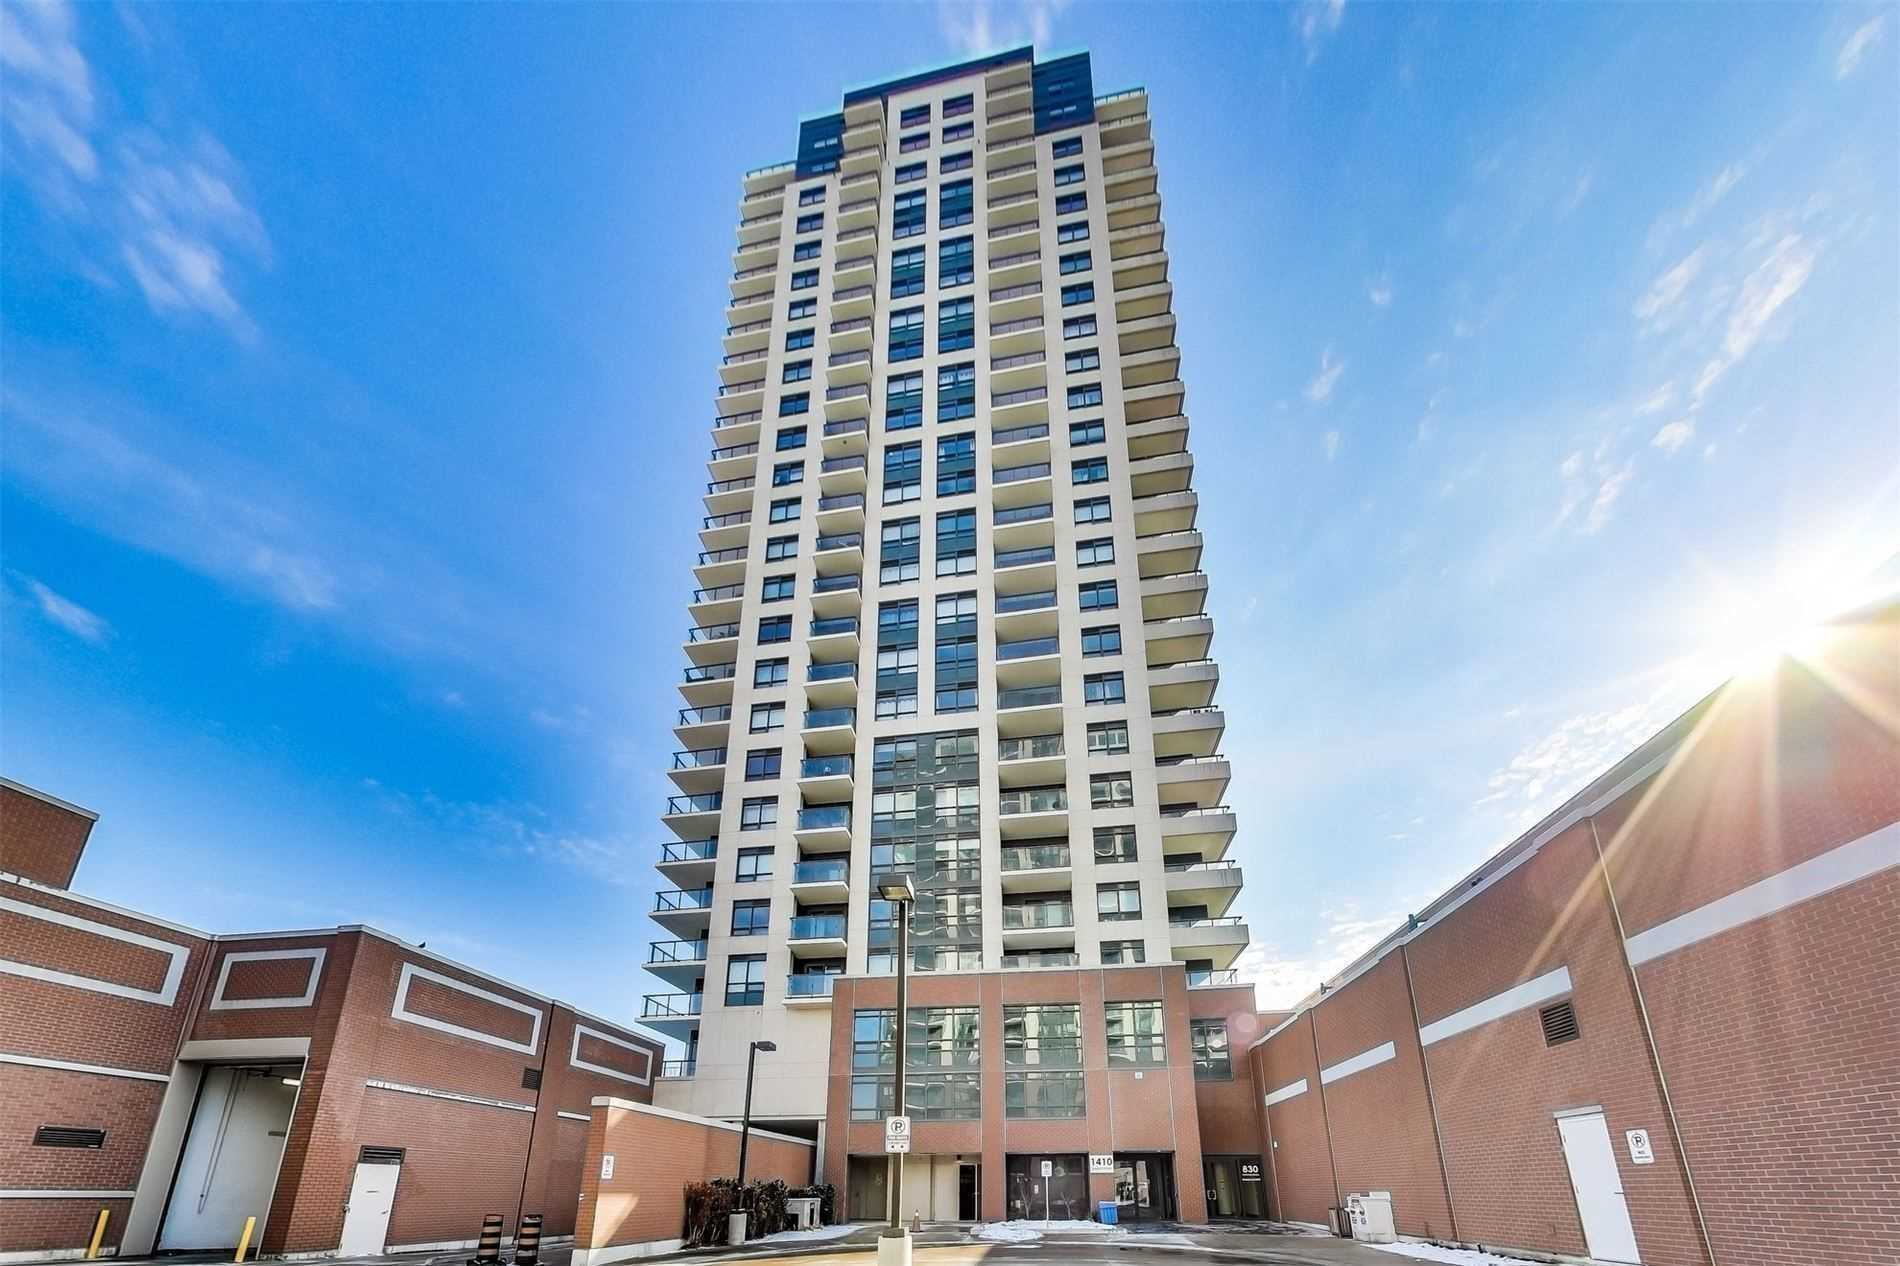 1410 Dupont St, Toronto, Ontario M6H 2B1, 1 Bedroom Bedrooms, 6 Rooms Rooms,1 BathroomBathrooms,Condo Apt,For Sale,Dupont,W4929183